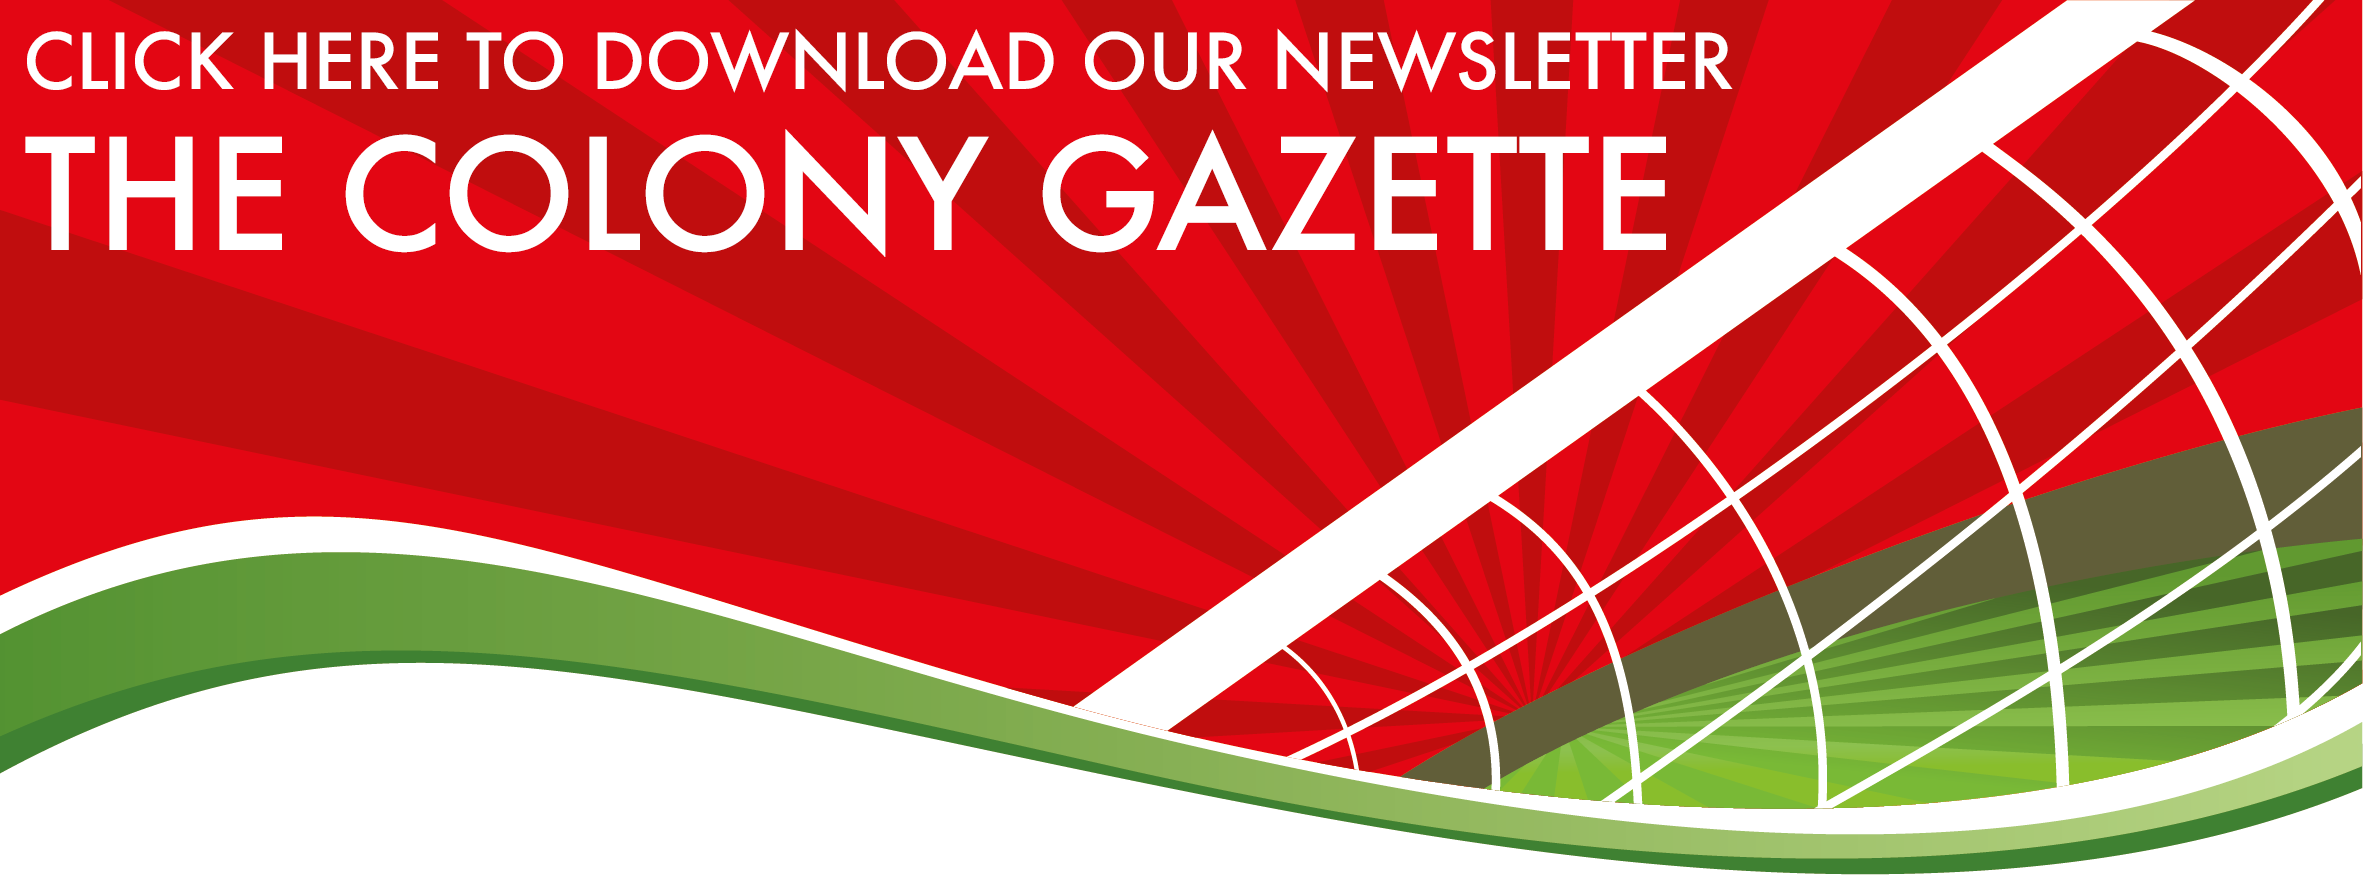 Latest News - The club regularly publishes a newsletter, to keep the teams, parents and supporters up-to-date with the latest developments. Click on the image to your left to download it, or click below to read our latest news on the site.